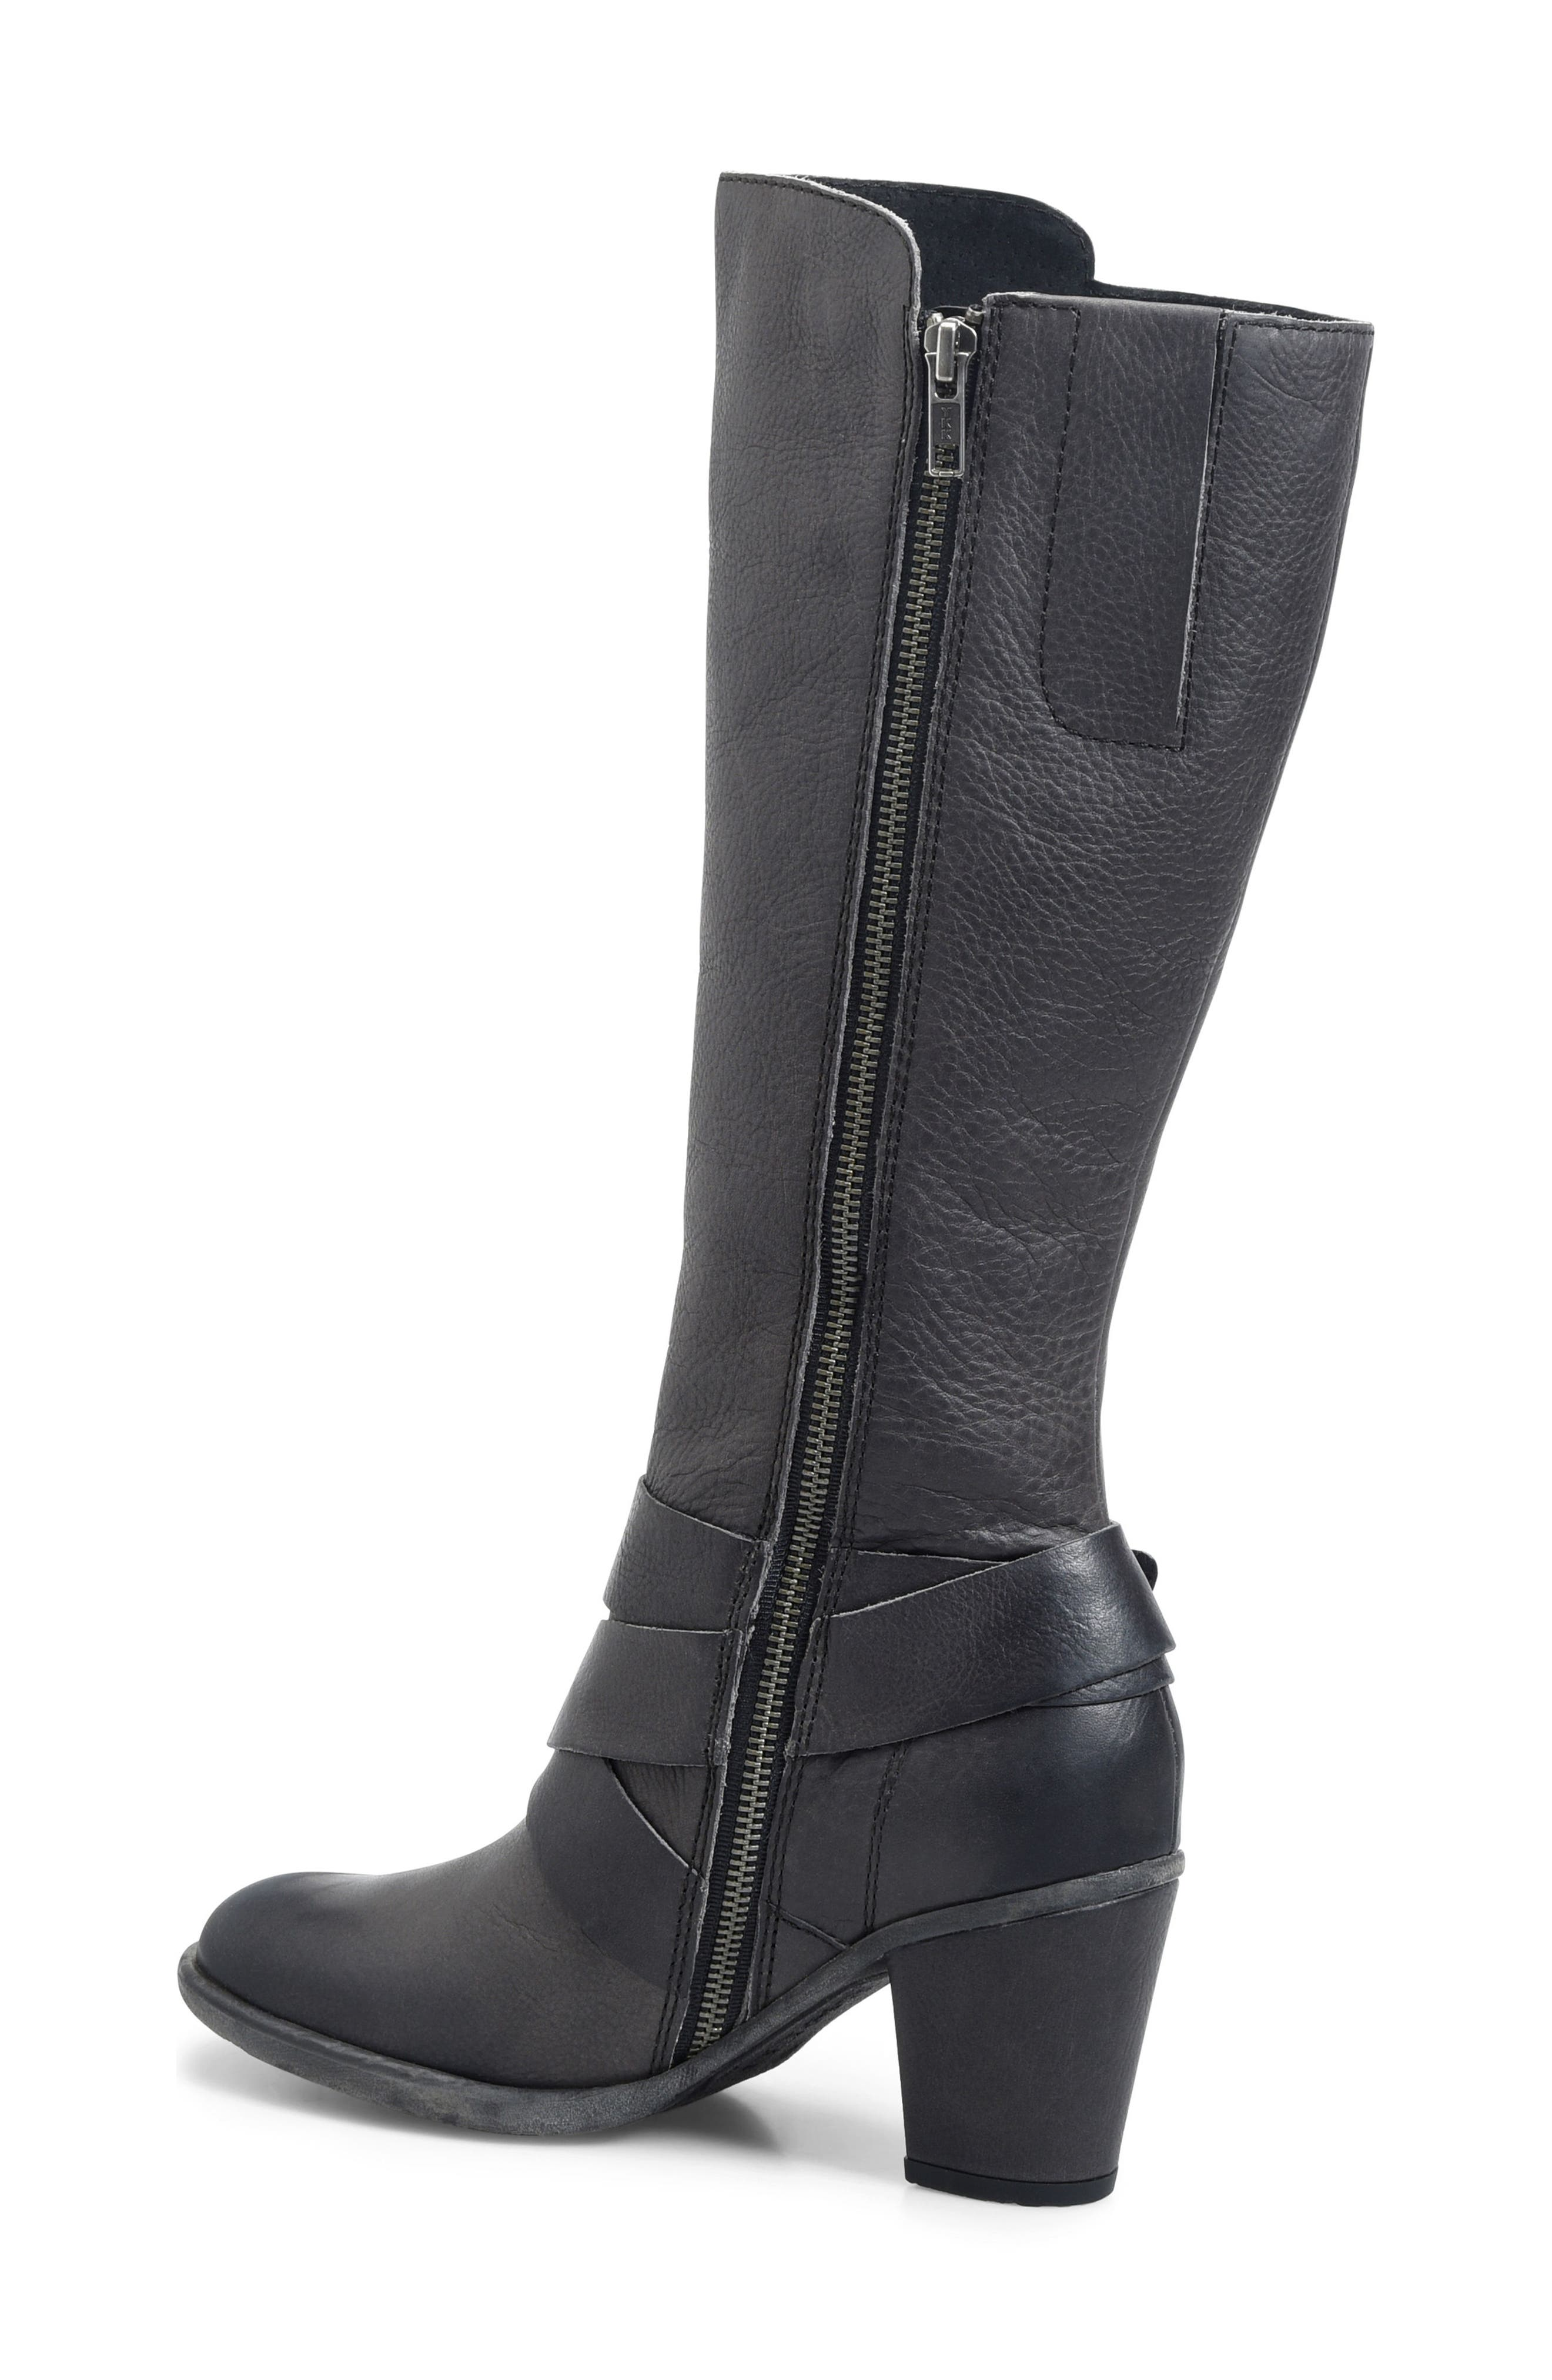 Alternate Image 2  - Børn Cresent Knee High Boot (Women)